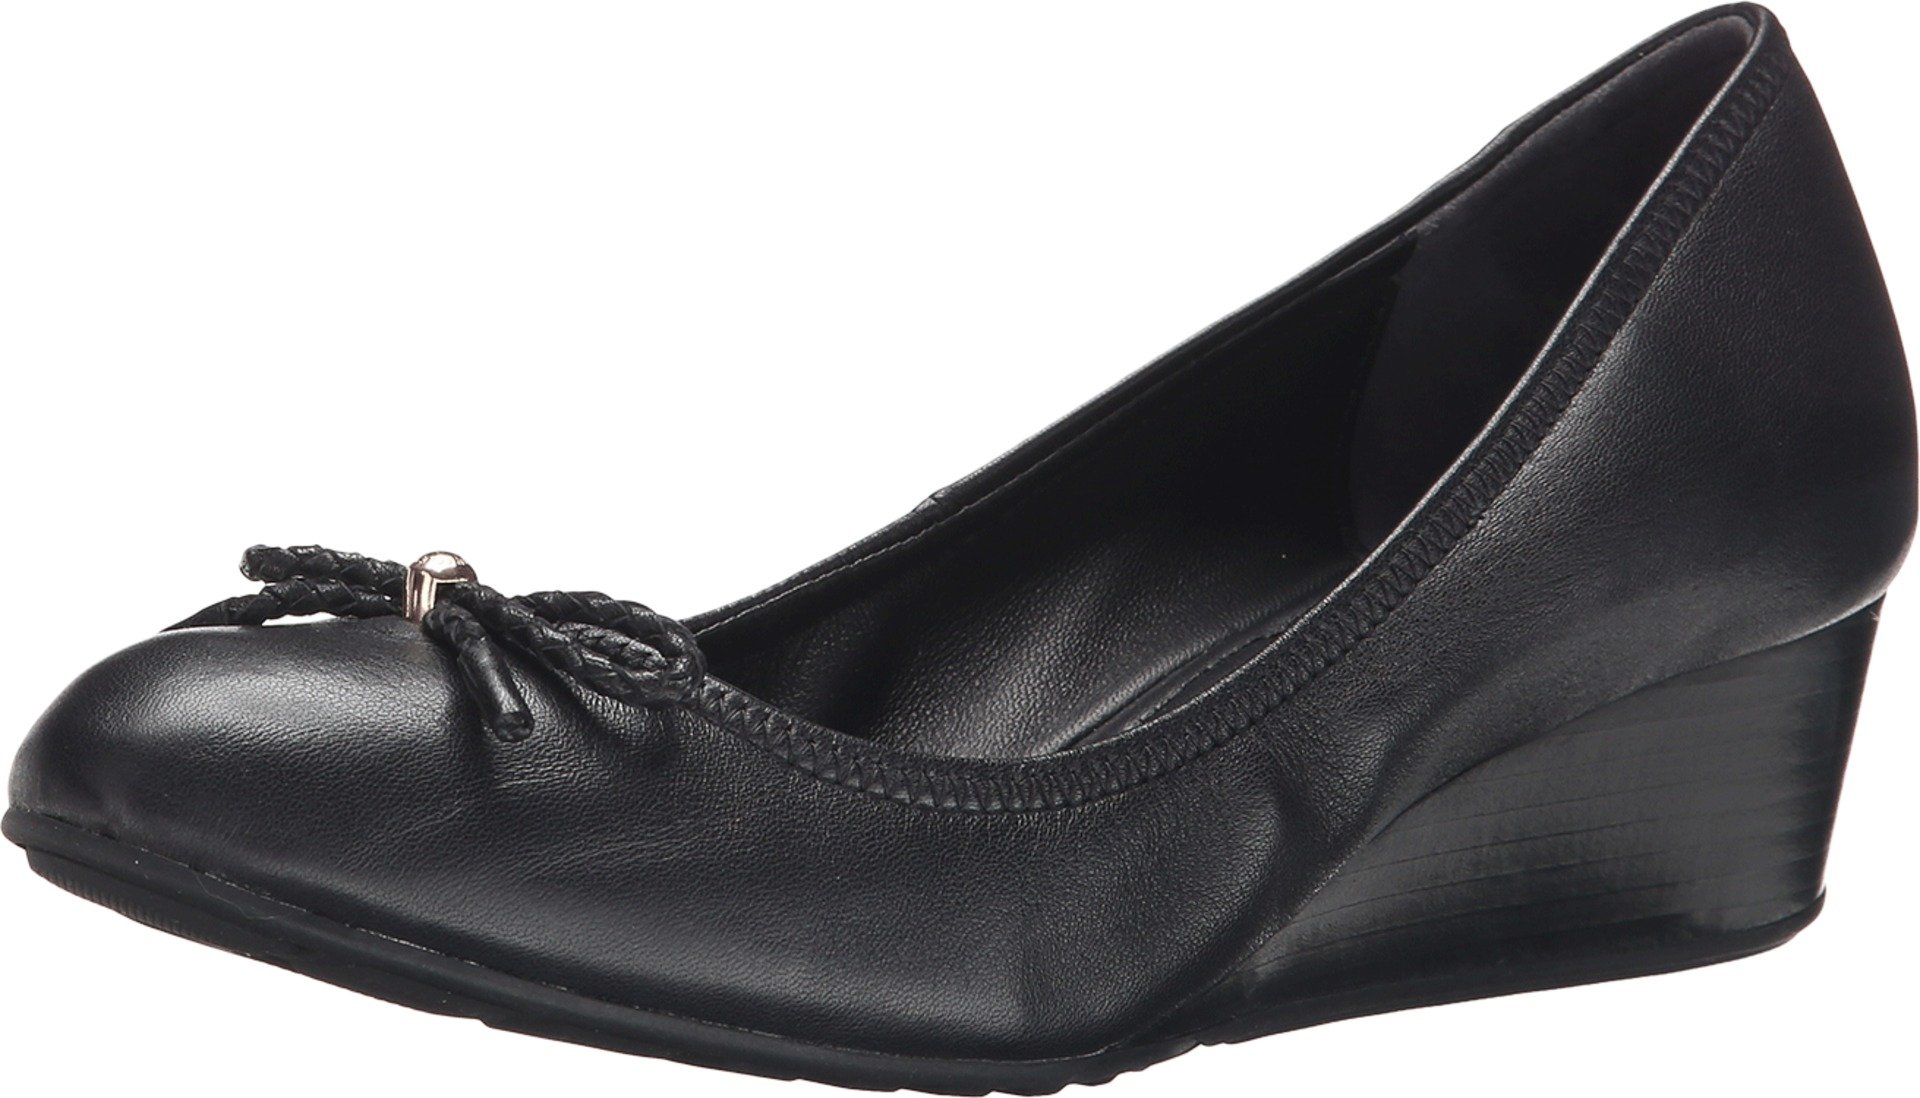 Cole Haan Women's TALI GRAND LACE WEDGE 40 Shoe, Black, 8 2A US